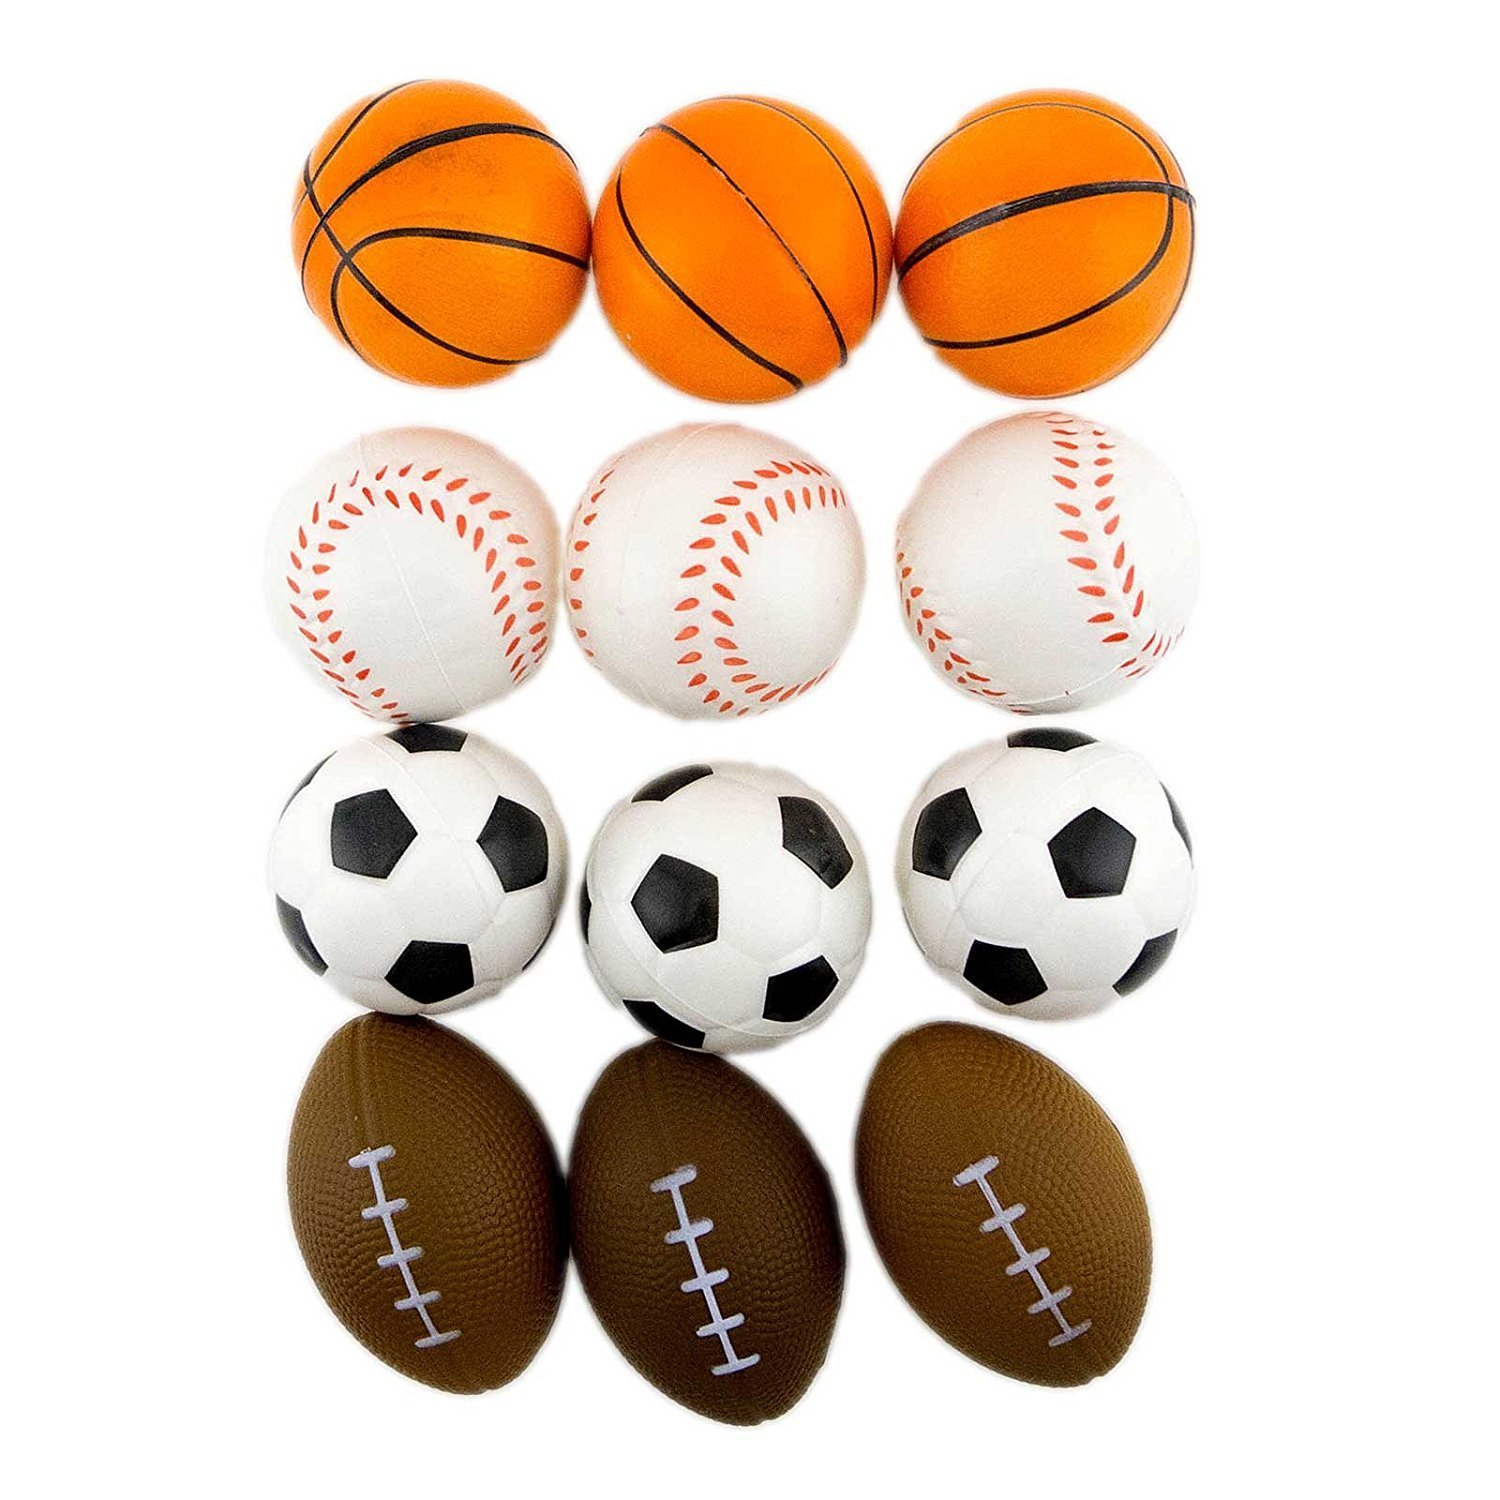 12 Stress Sport Ball Sponge Balls Foam Ball Basketball Football Soccer Baseball2 1 2 Foam... by